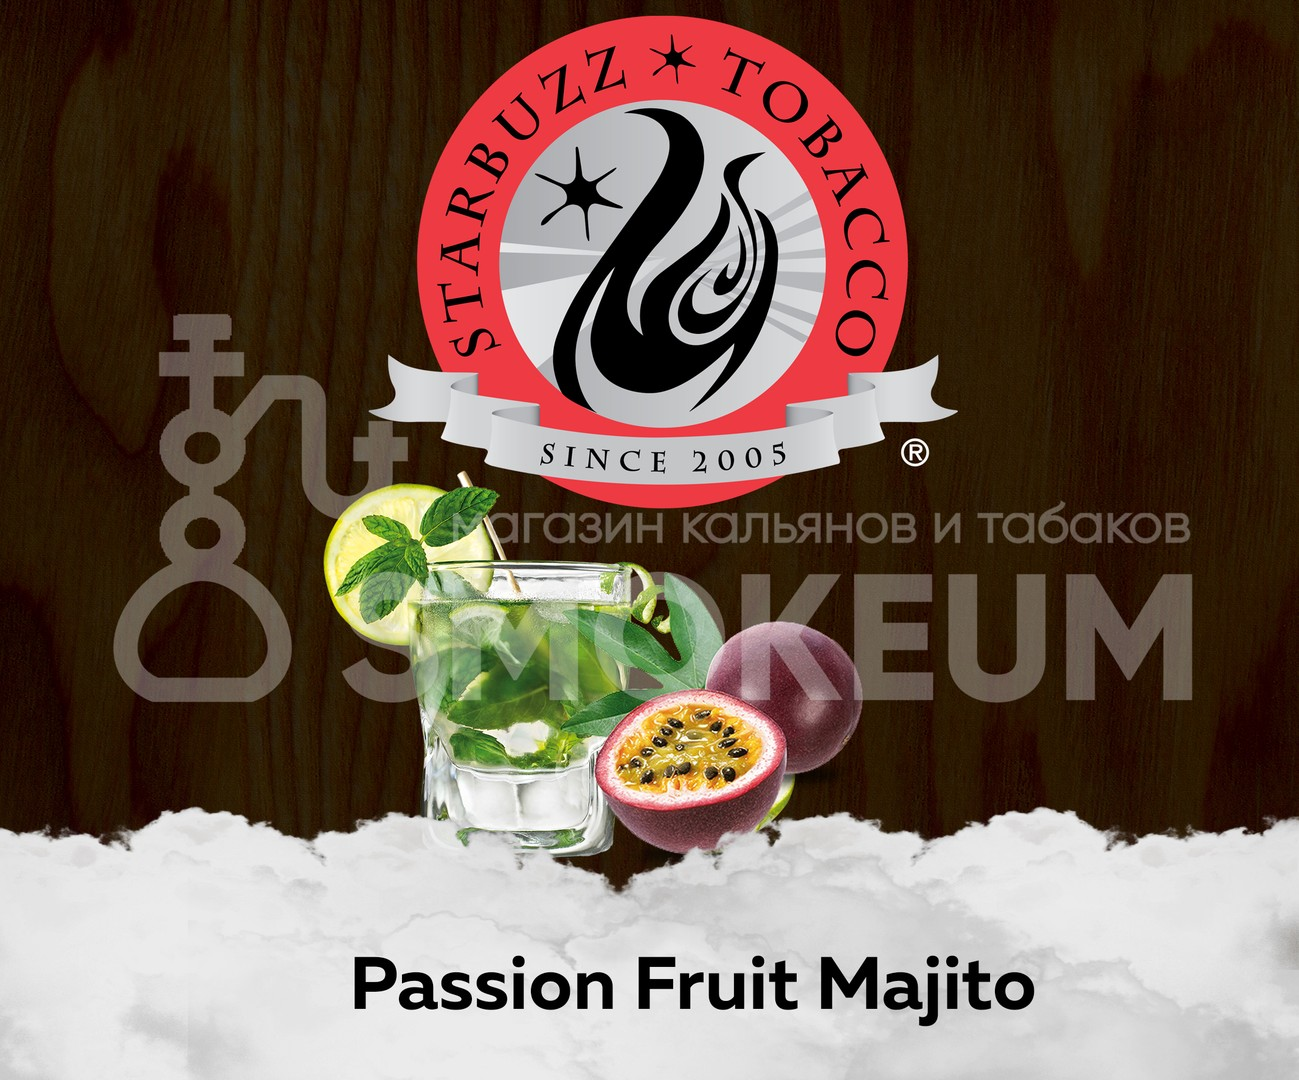 Табак Starbuzz - Passion Fruit Majito (Мохито Маракуйя) 250 гр